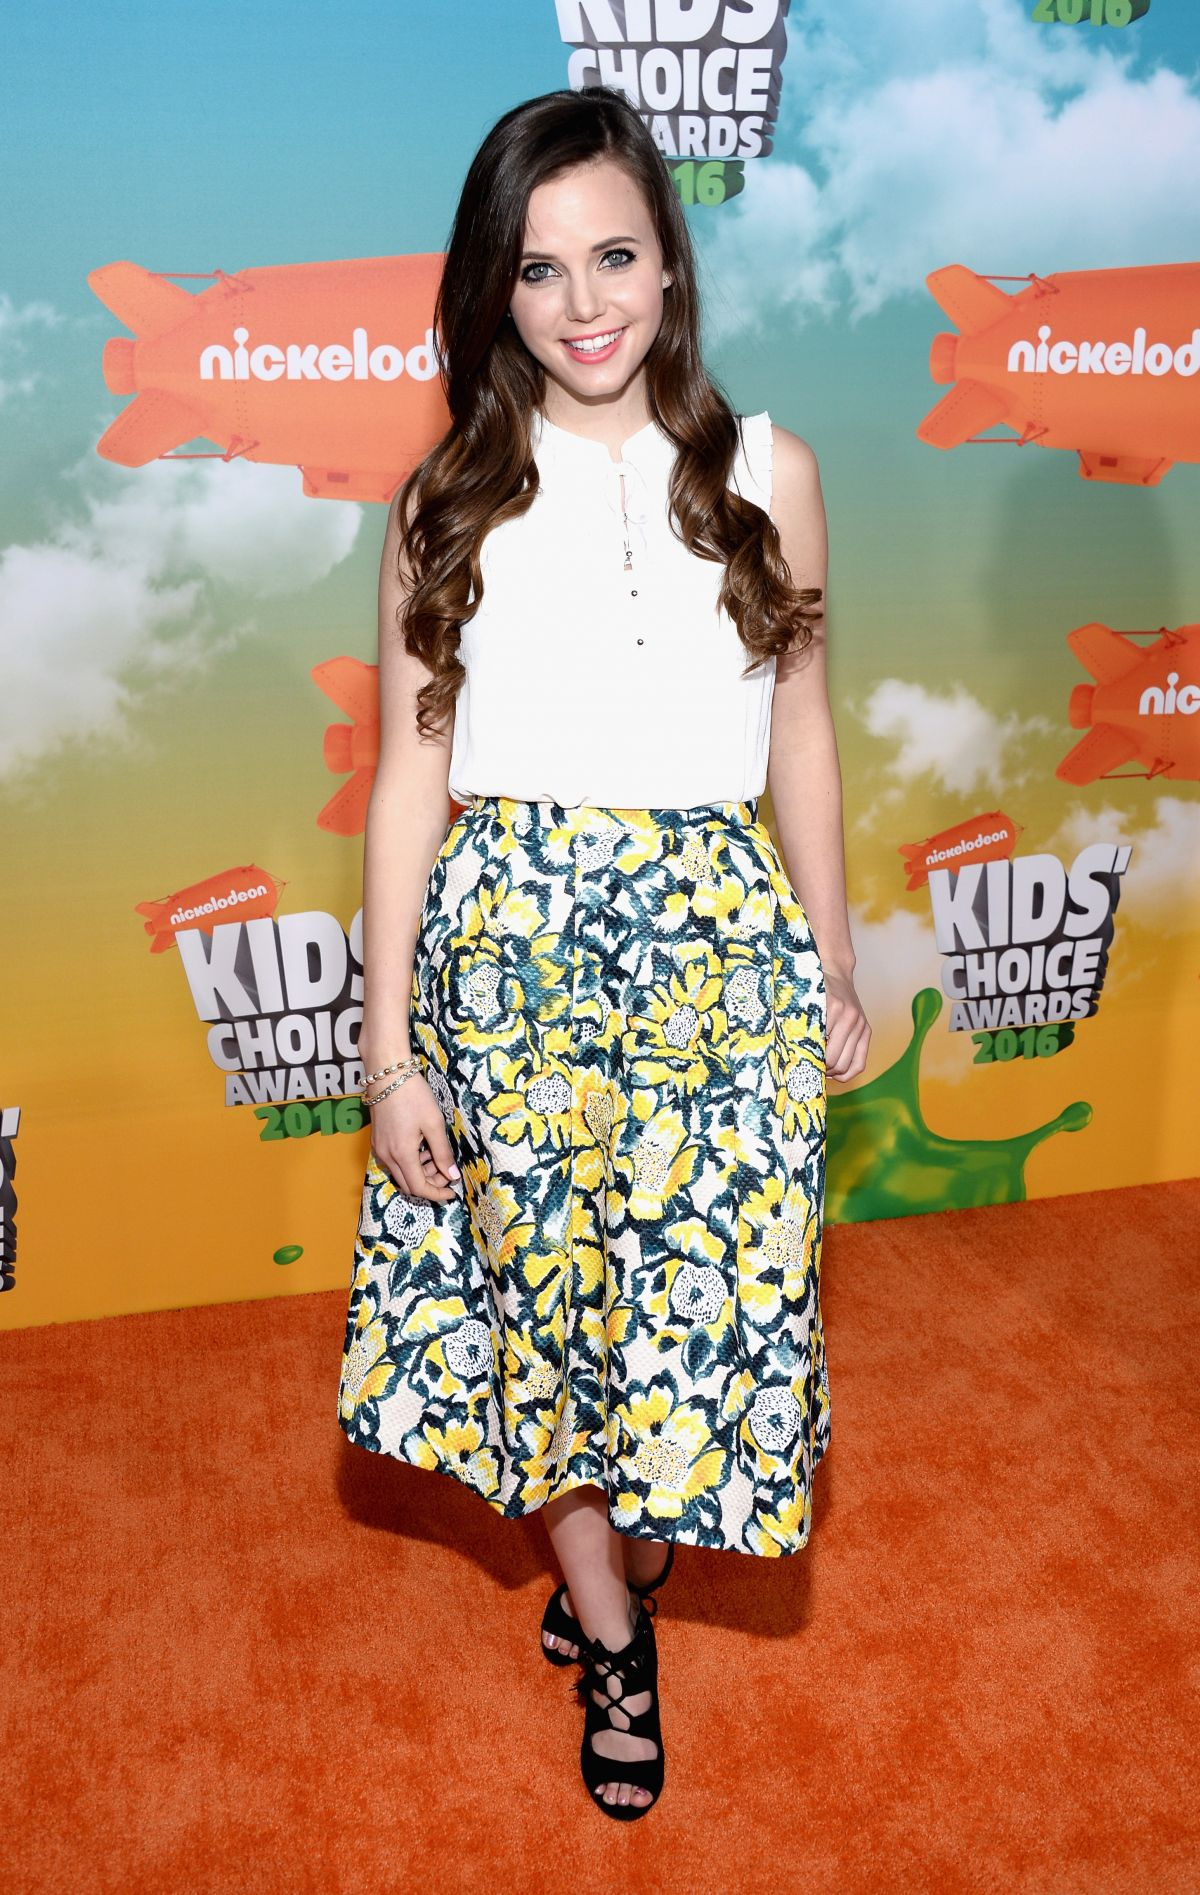 TIFFANY ALVORD at Nickelodeon